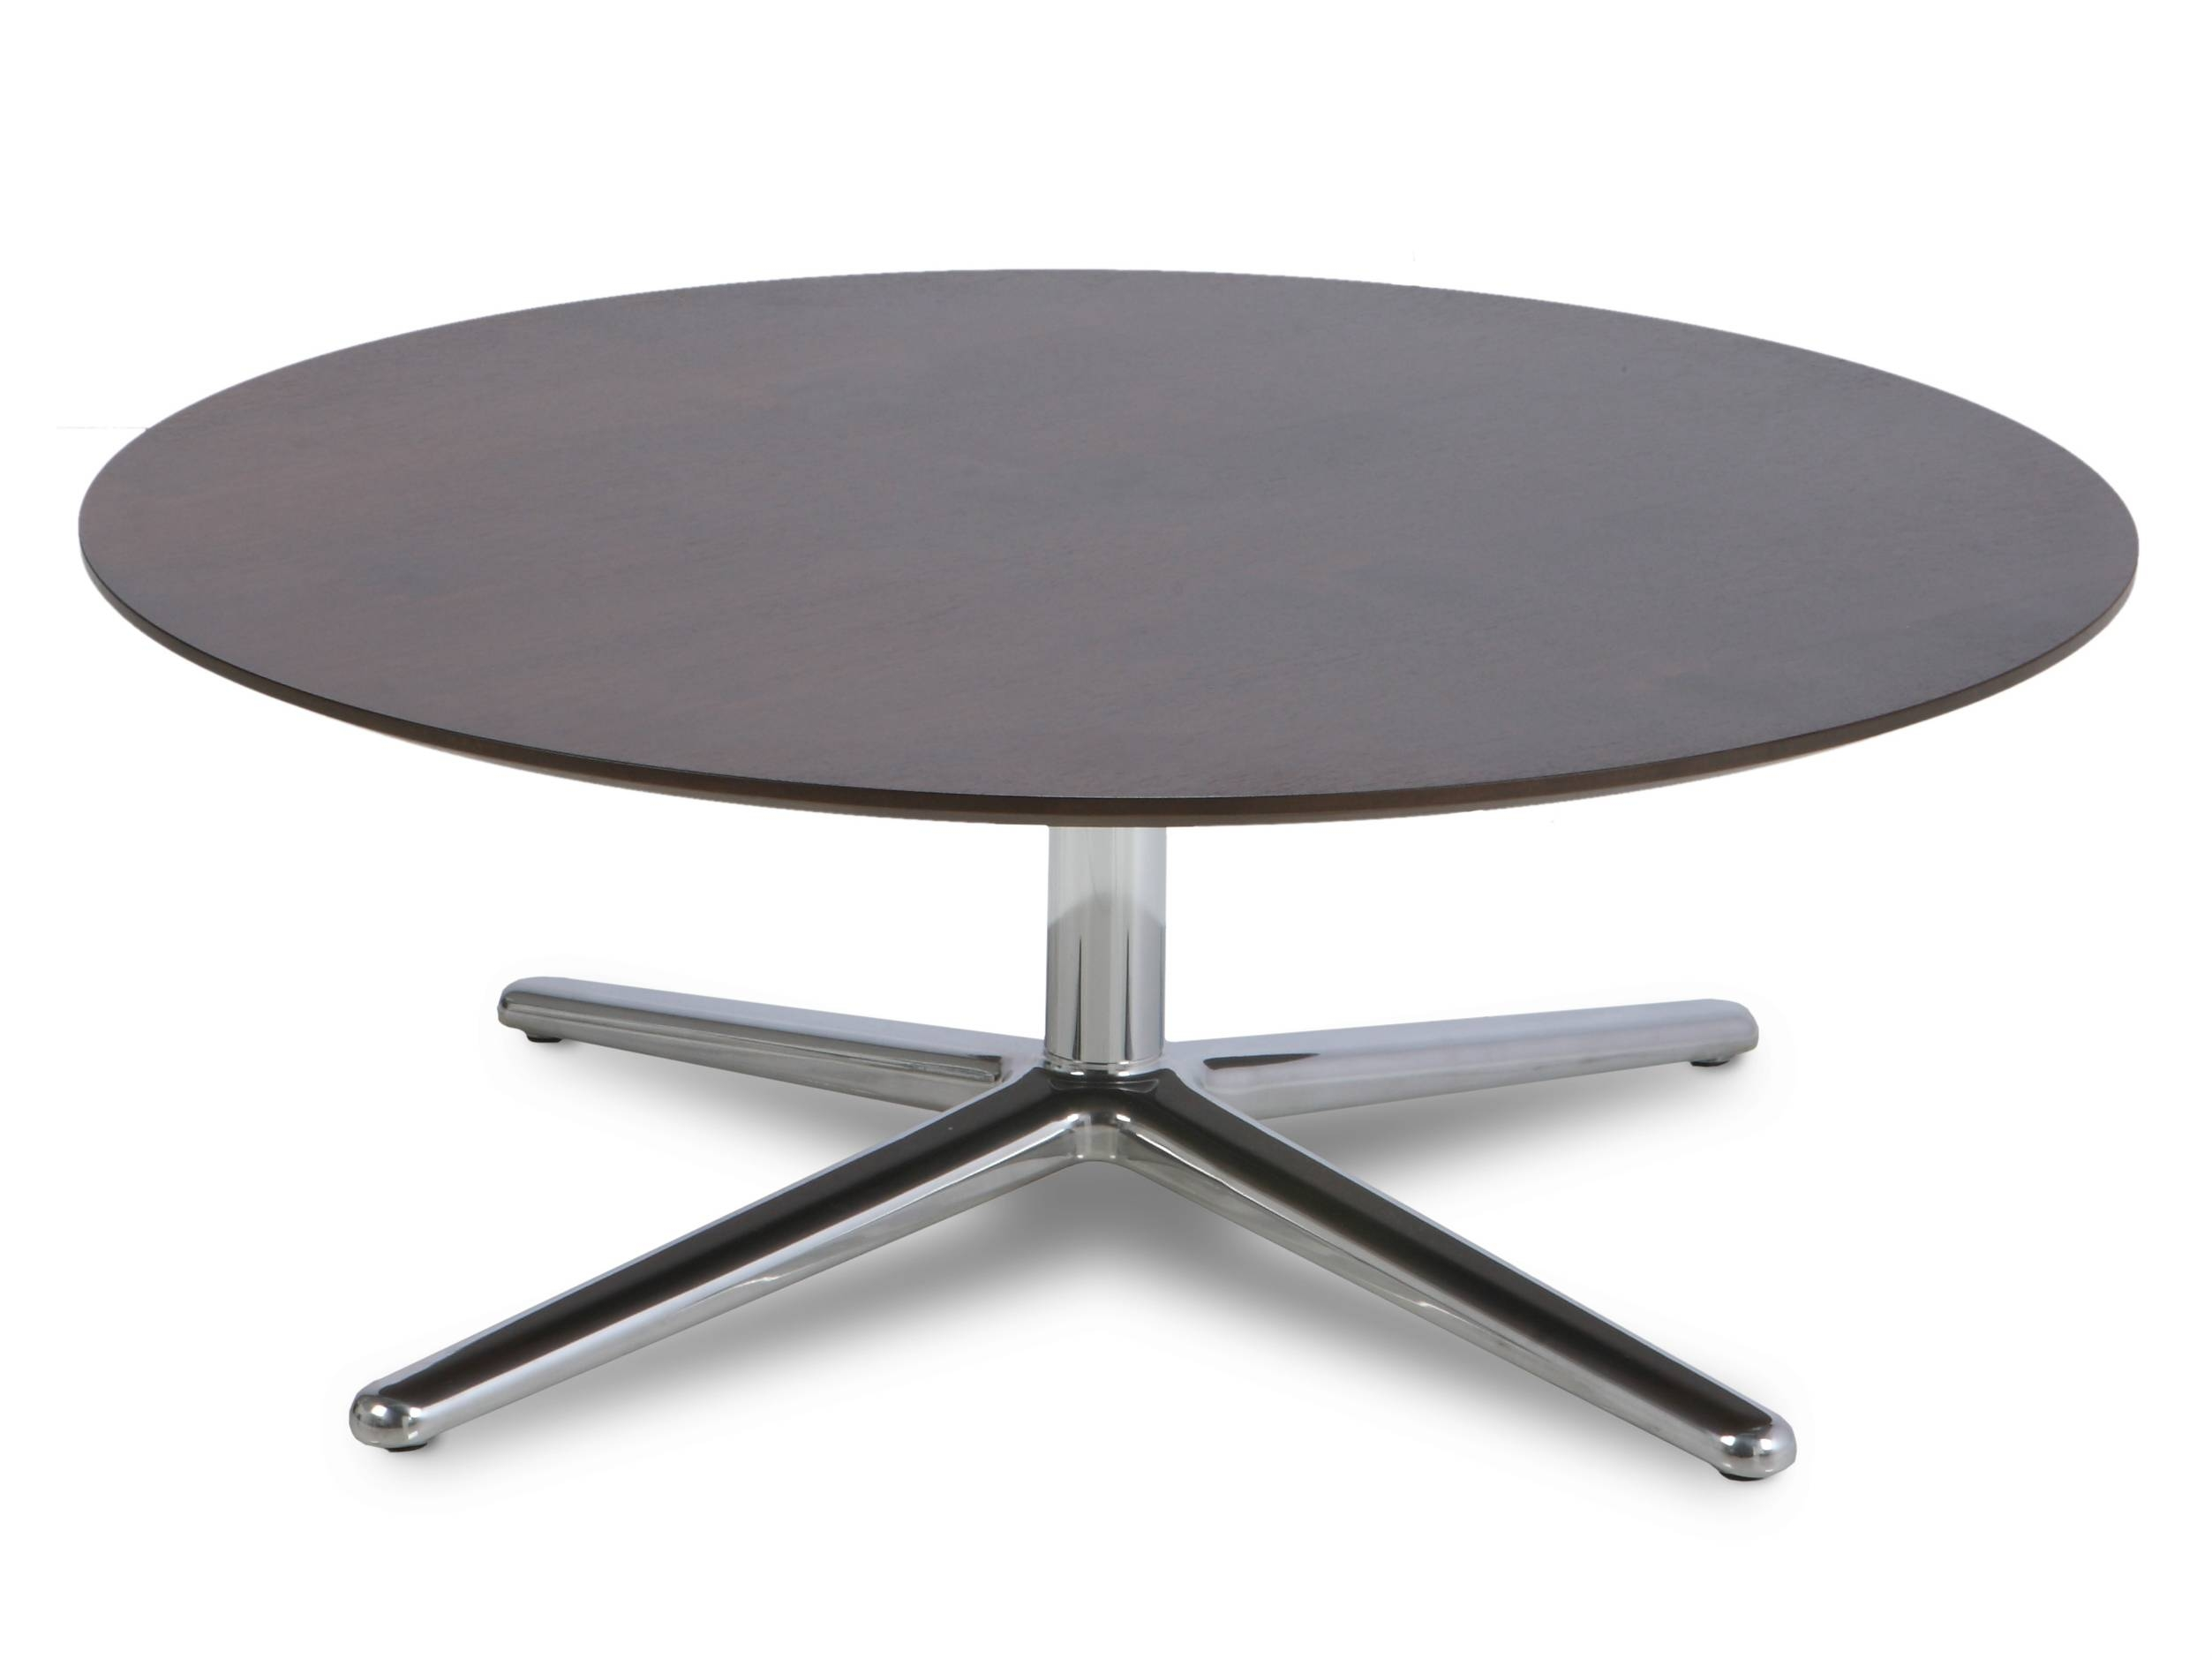 Innovative Round Low Coffee Table With Coffee Table Creative with Circle Coffee Tables (Image 22 of 30)